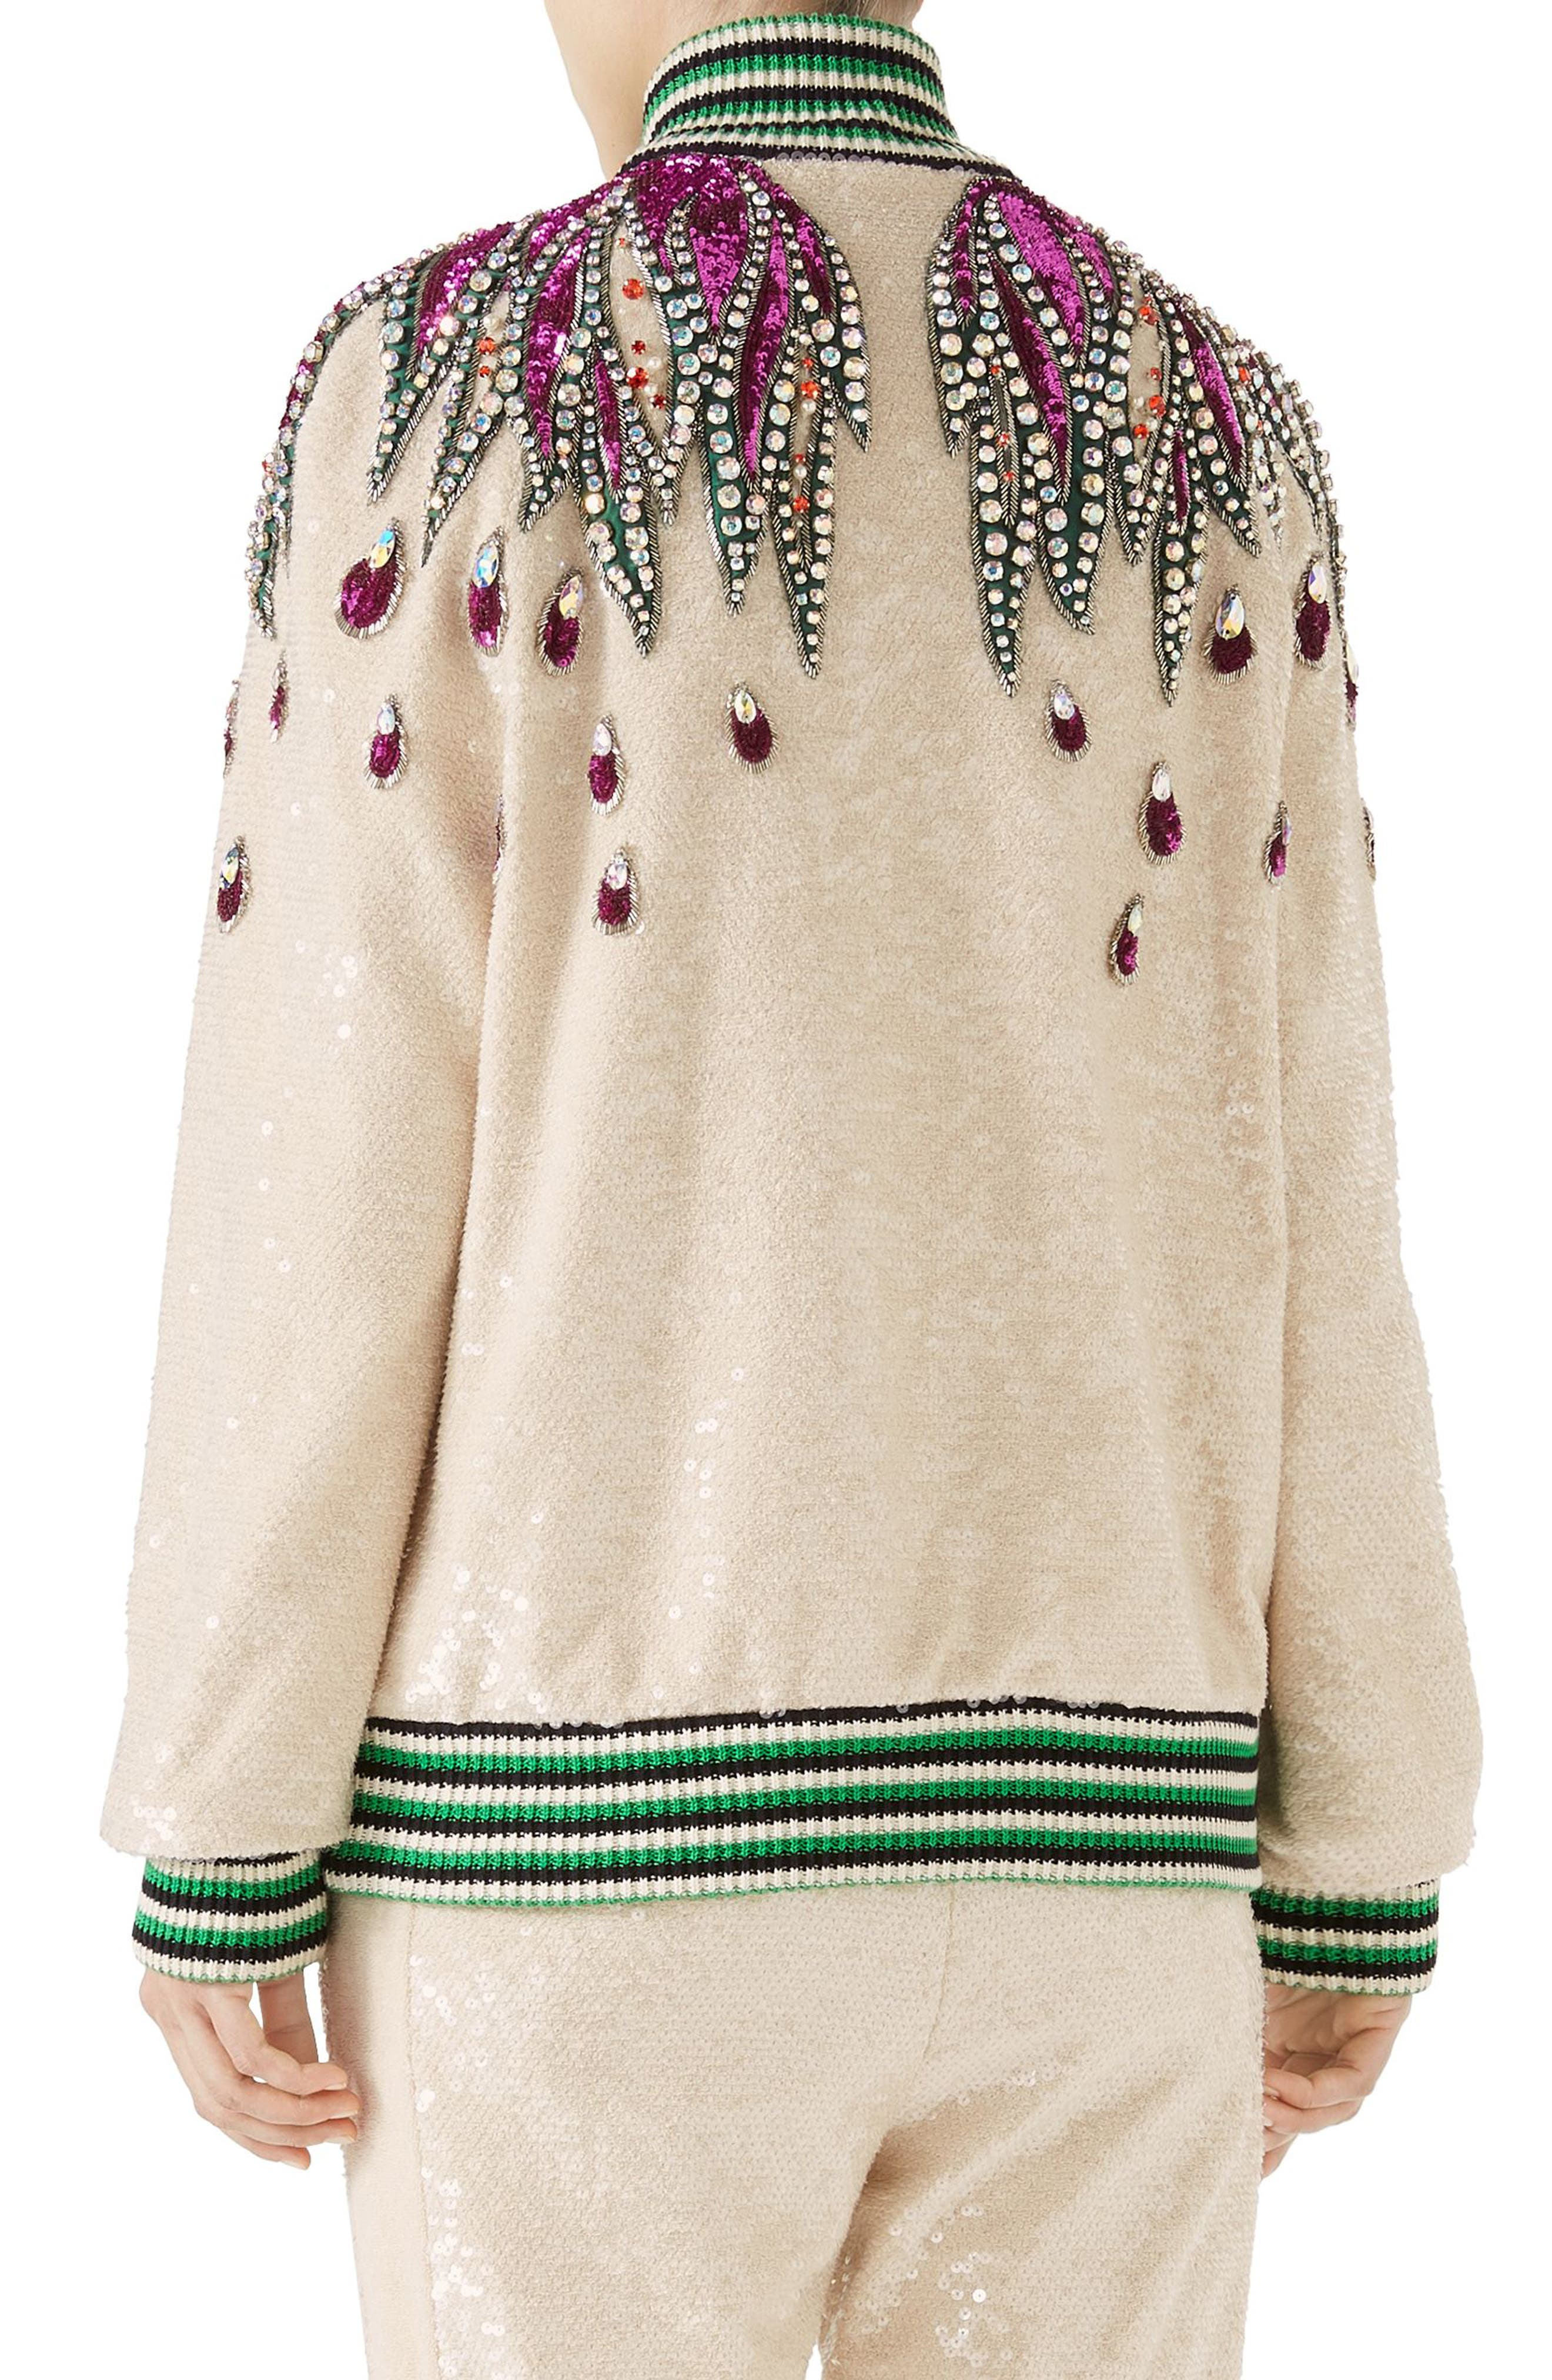 Embellished Track Jacket,                             Alternate thumbnail 2, color,                             Gardenia/ Multicolor